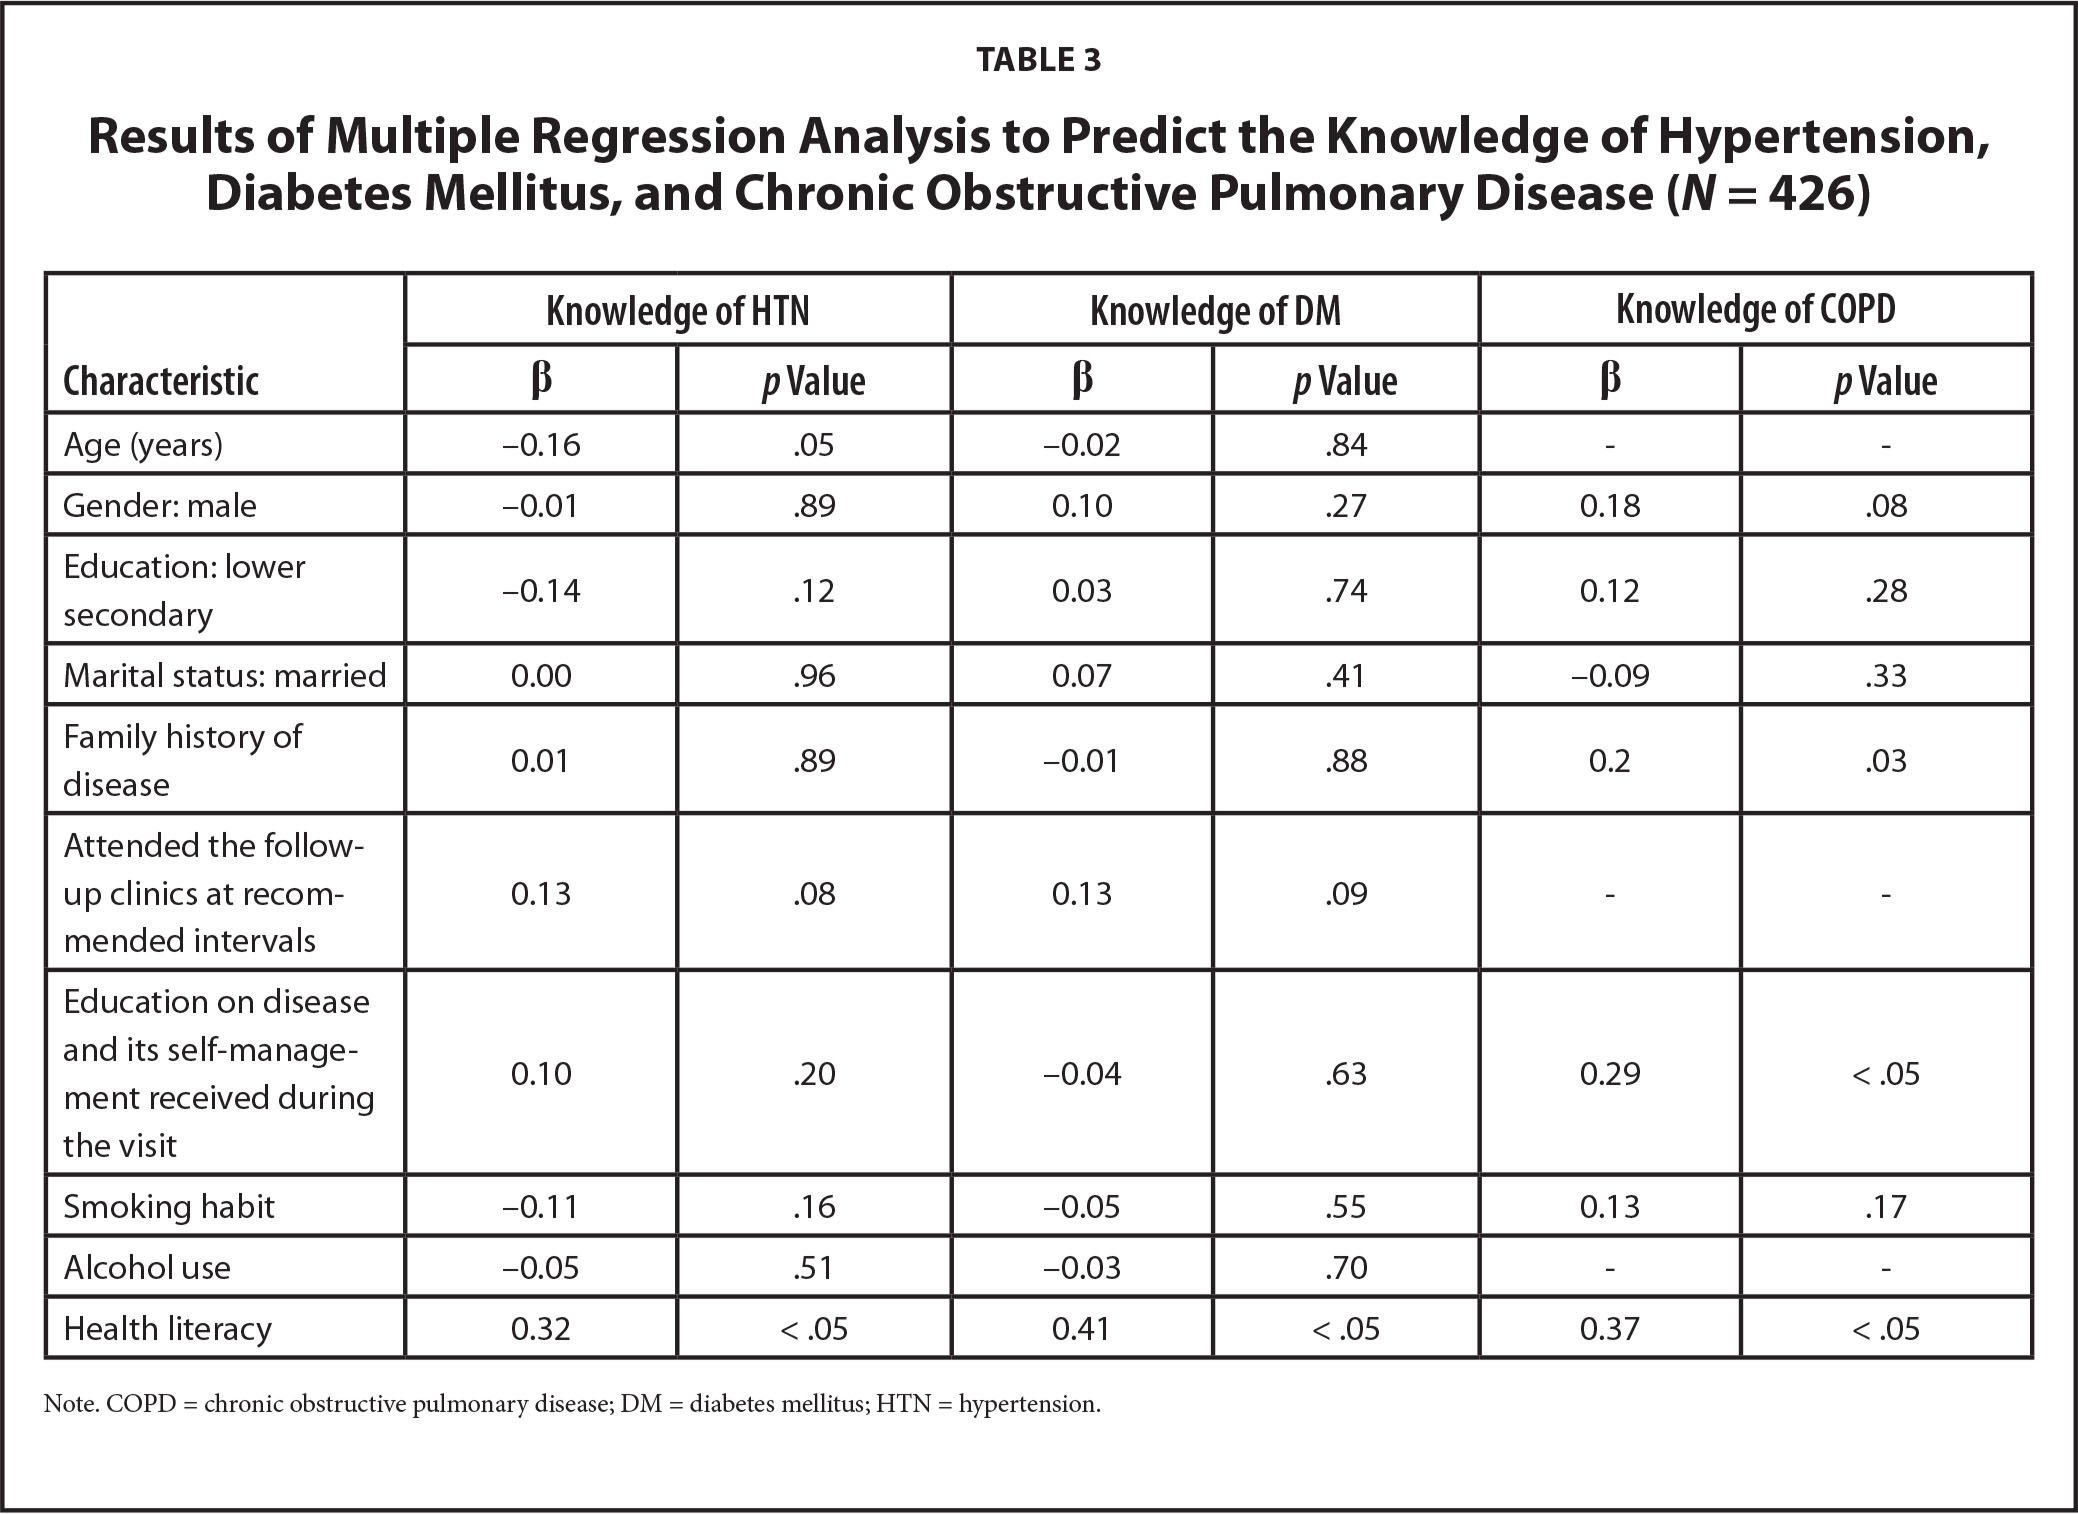 Results of Multiple Regression Analysis to Predict the Knowledge of Hypertension, Diabetes Mellitus, and Chronic Obstructive Pulmonary Disease (N = 426)